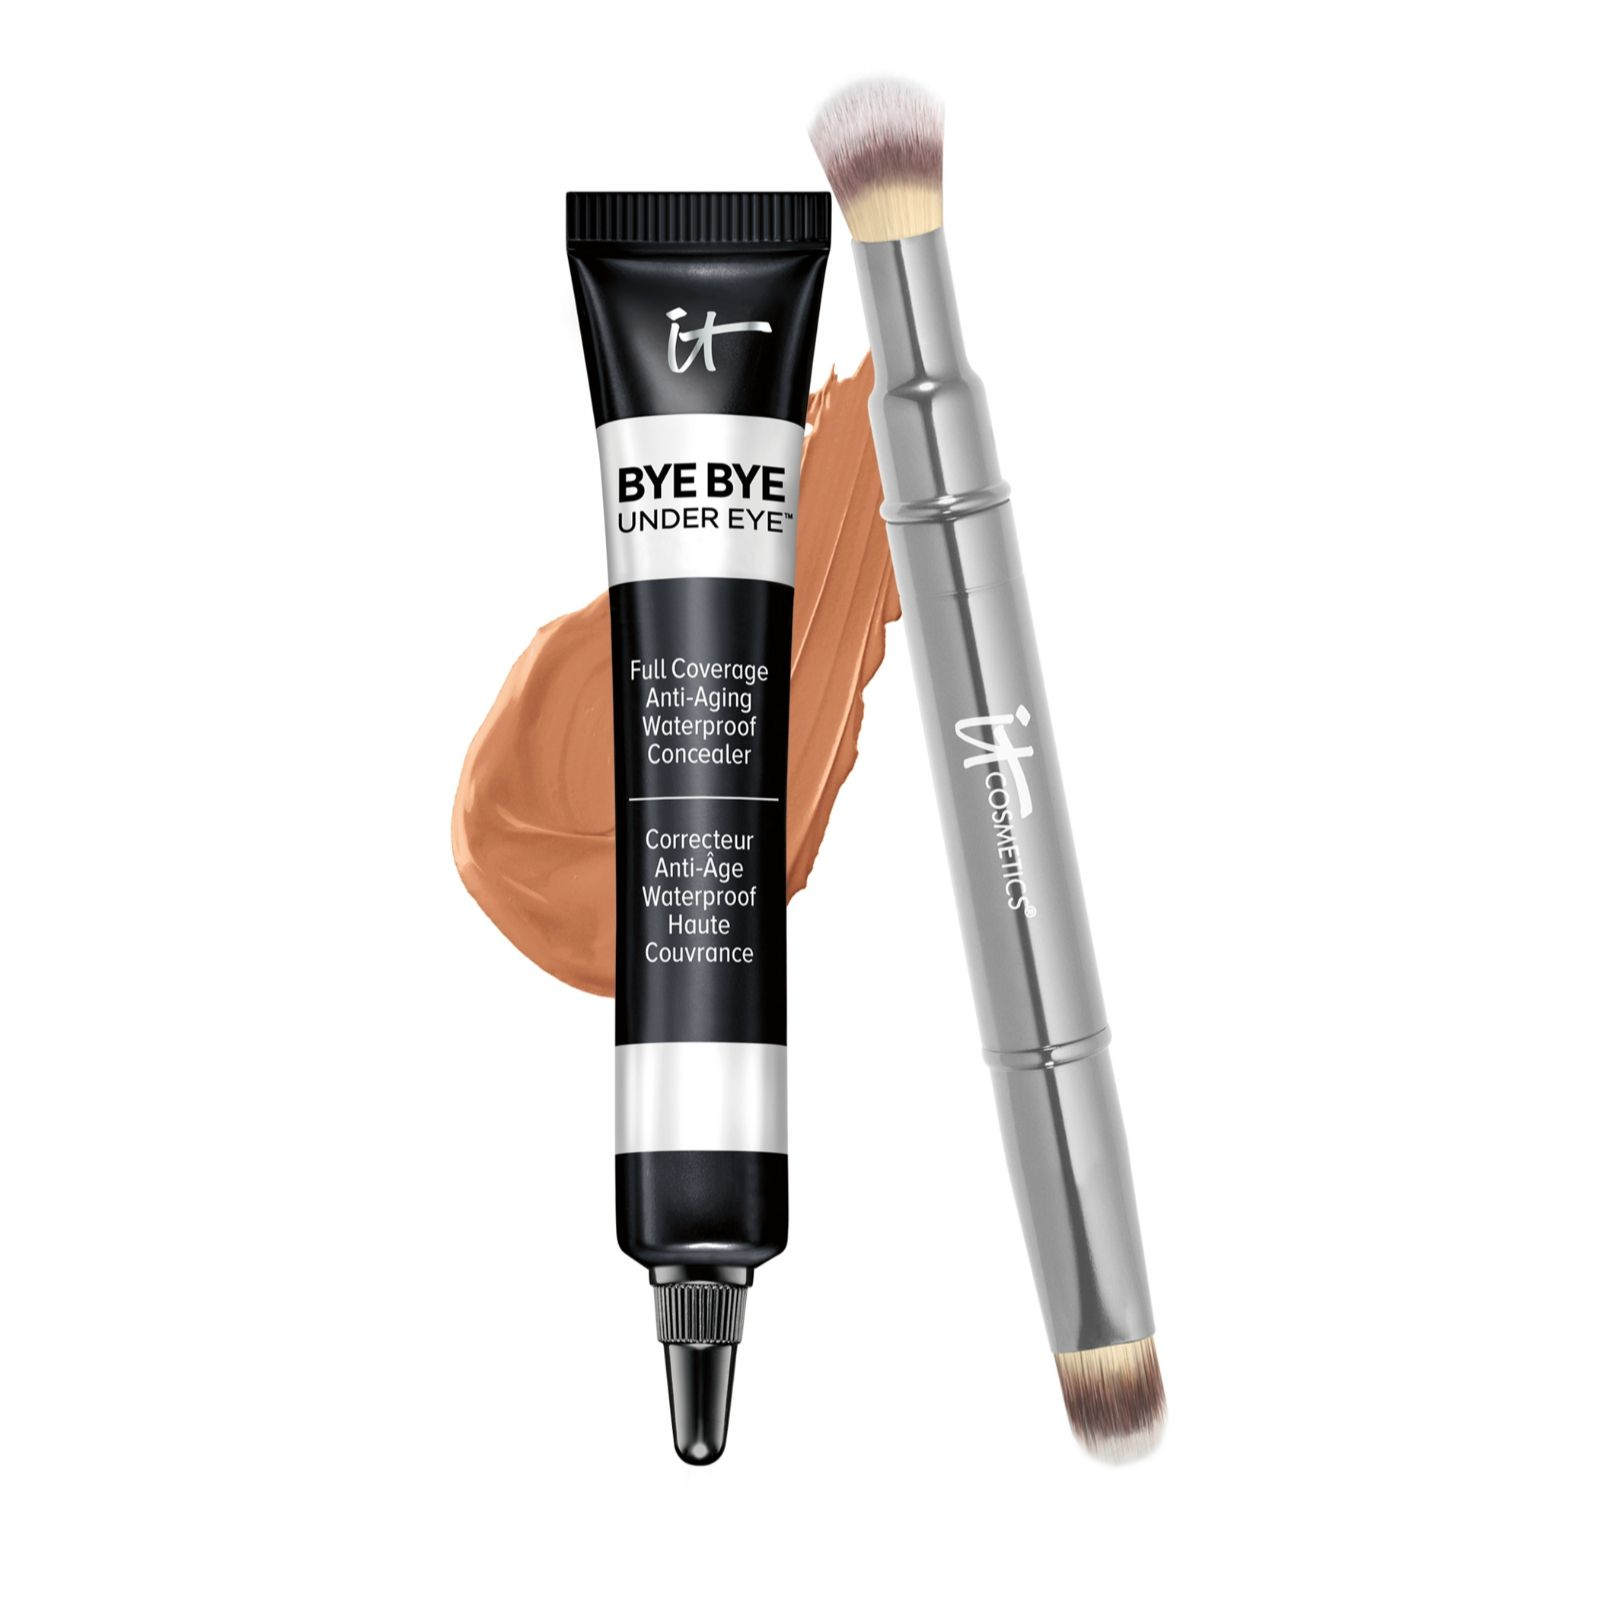 IT Cosmetics Bye Bye Under Eye Concealer & Brush - Page 1 - QVC UK